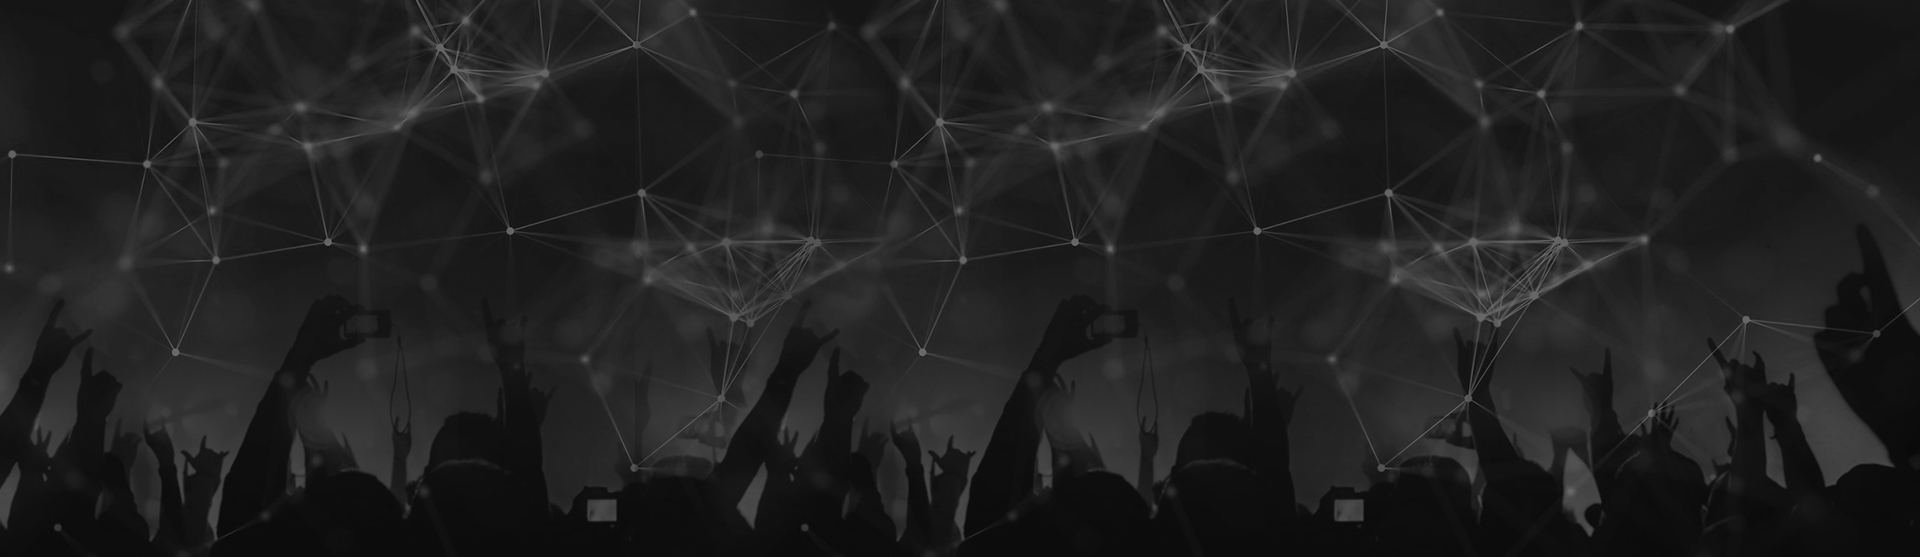 RAMA Group Blockchain in Entertainment